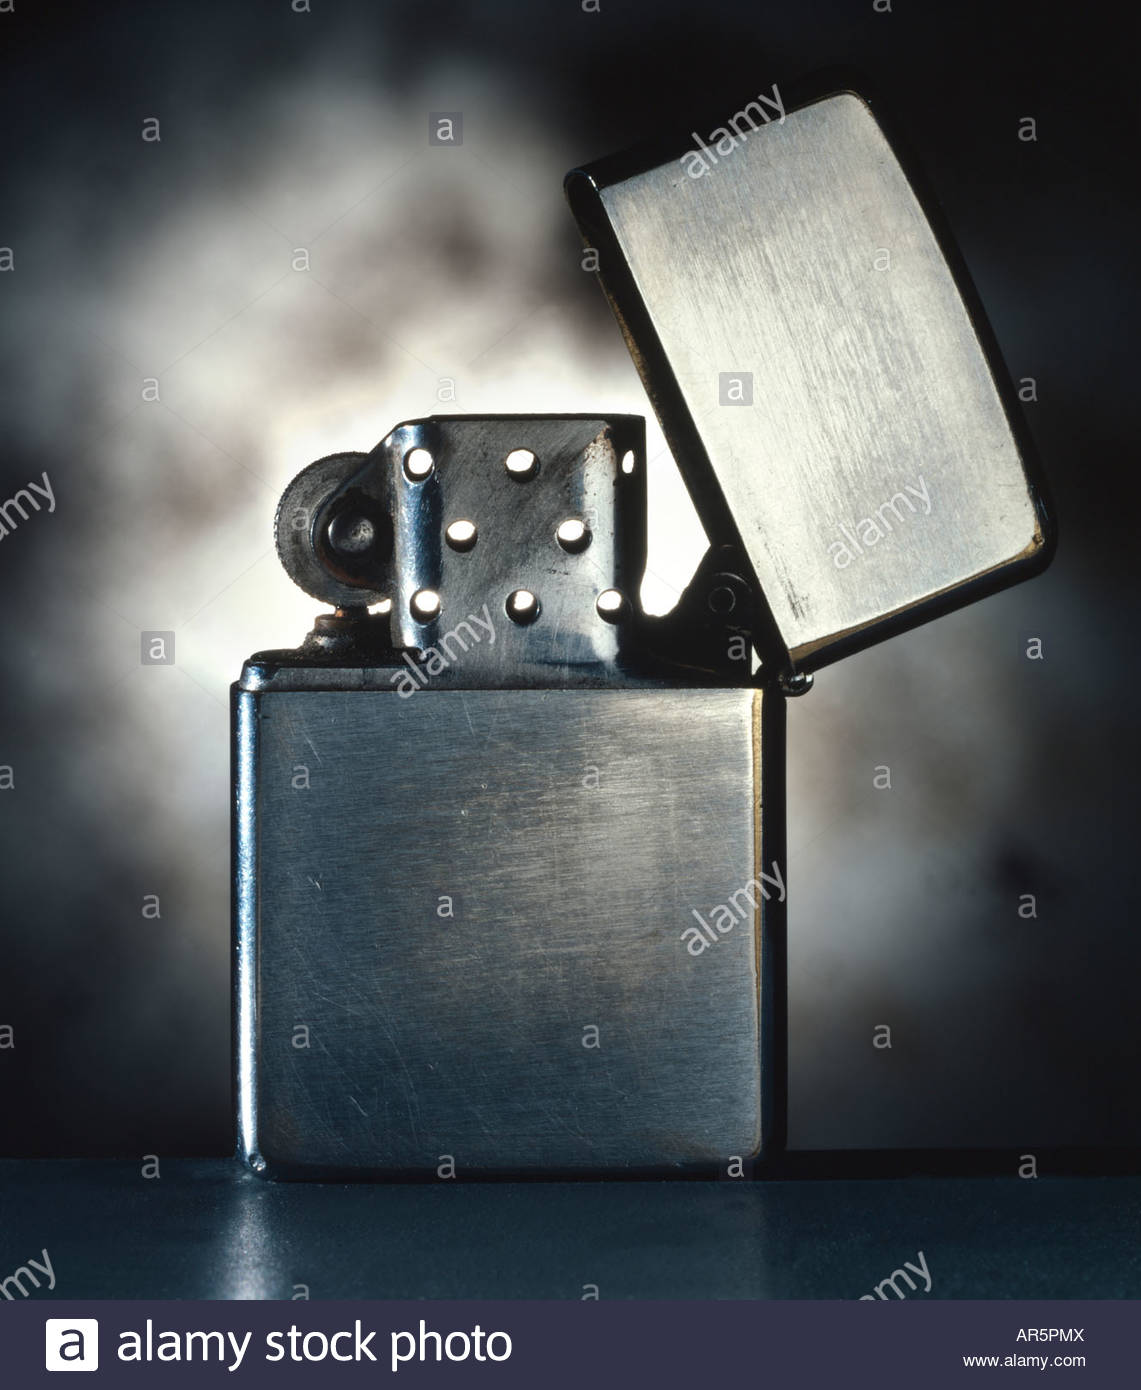 Old silver zippo lighter - Stock Image